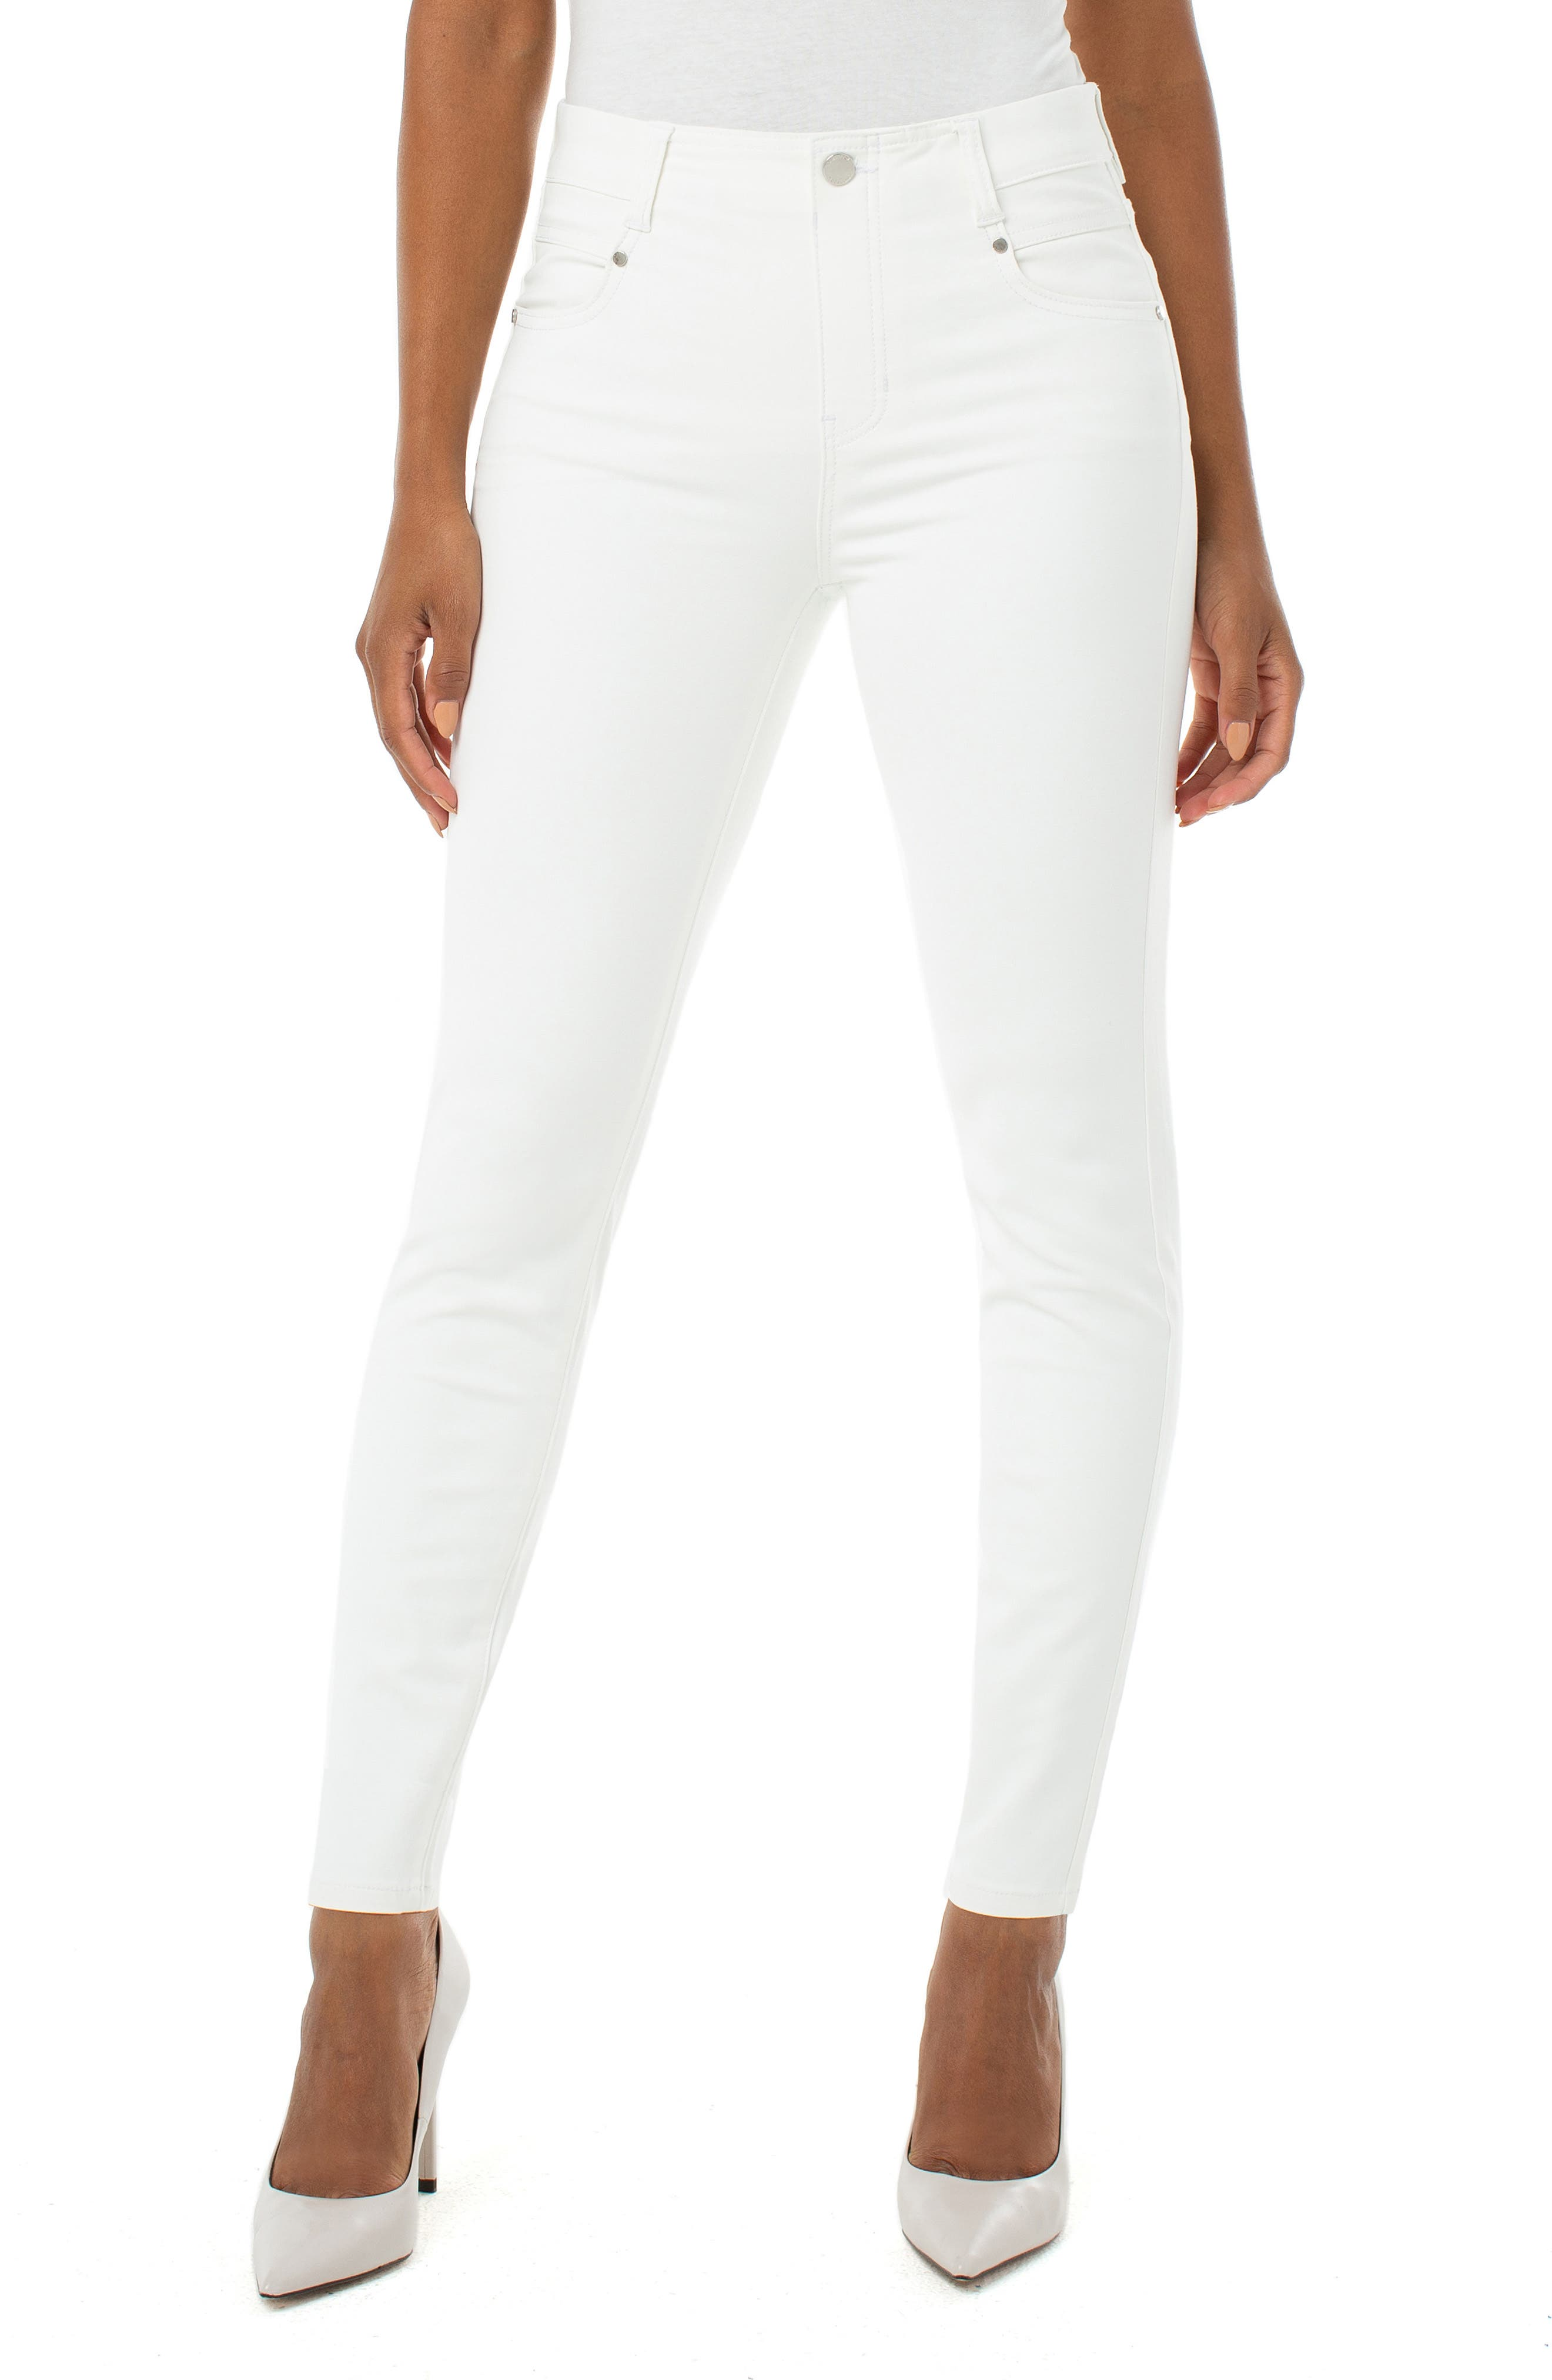 Gia Glider Skinny Pull-On Jeans